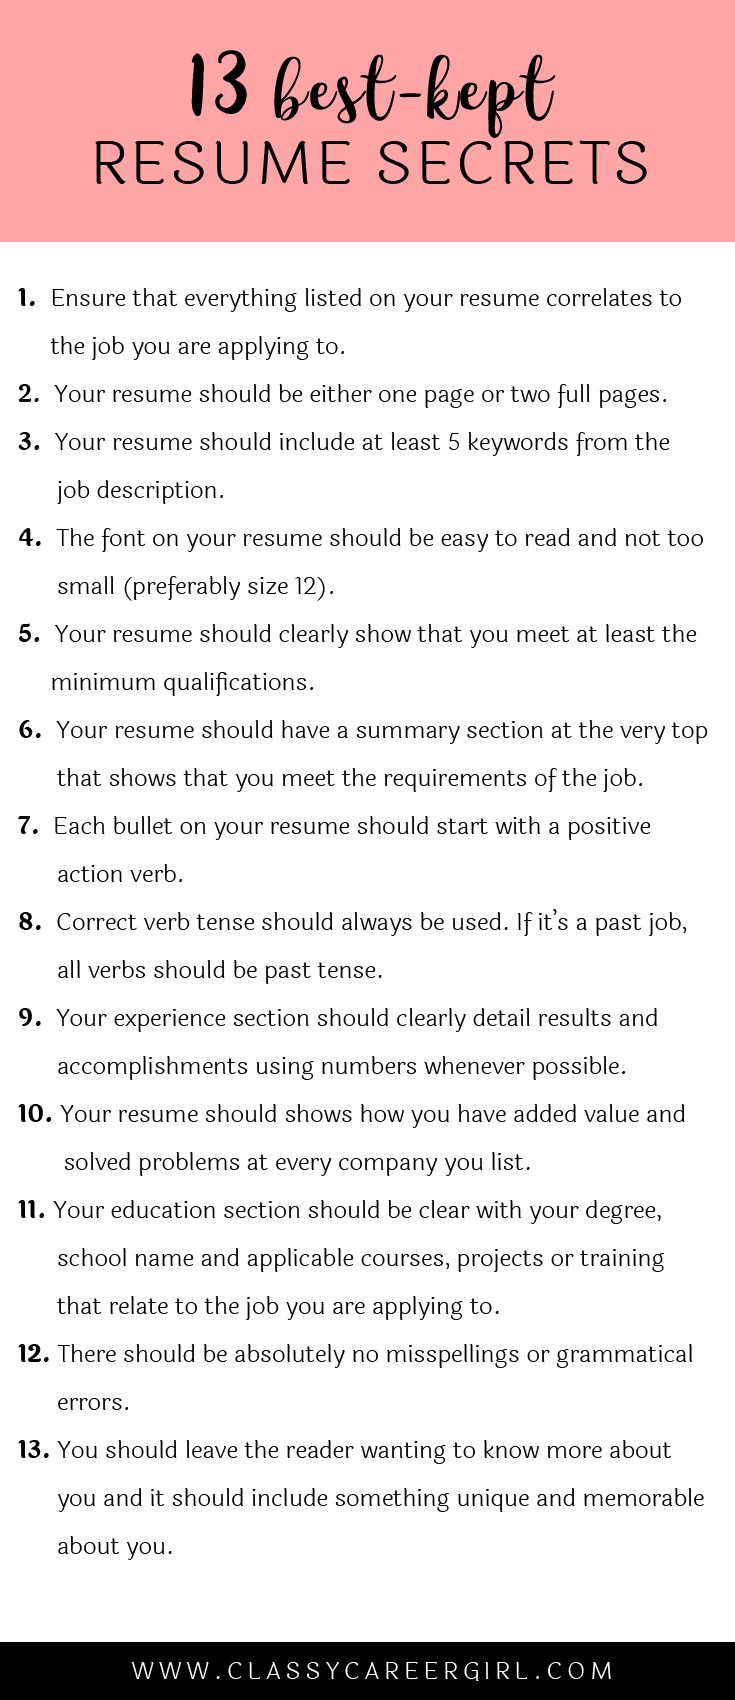 17 best resume ideas resume styles resume format some hiring managers will toss your resume out if you don t know these 13